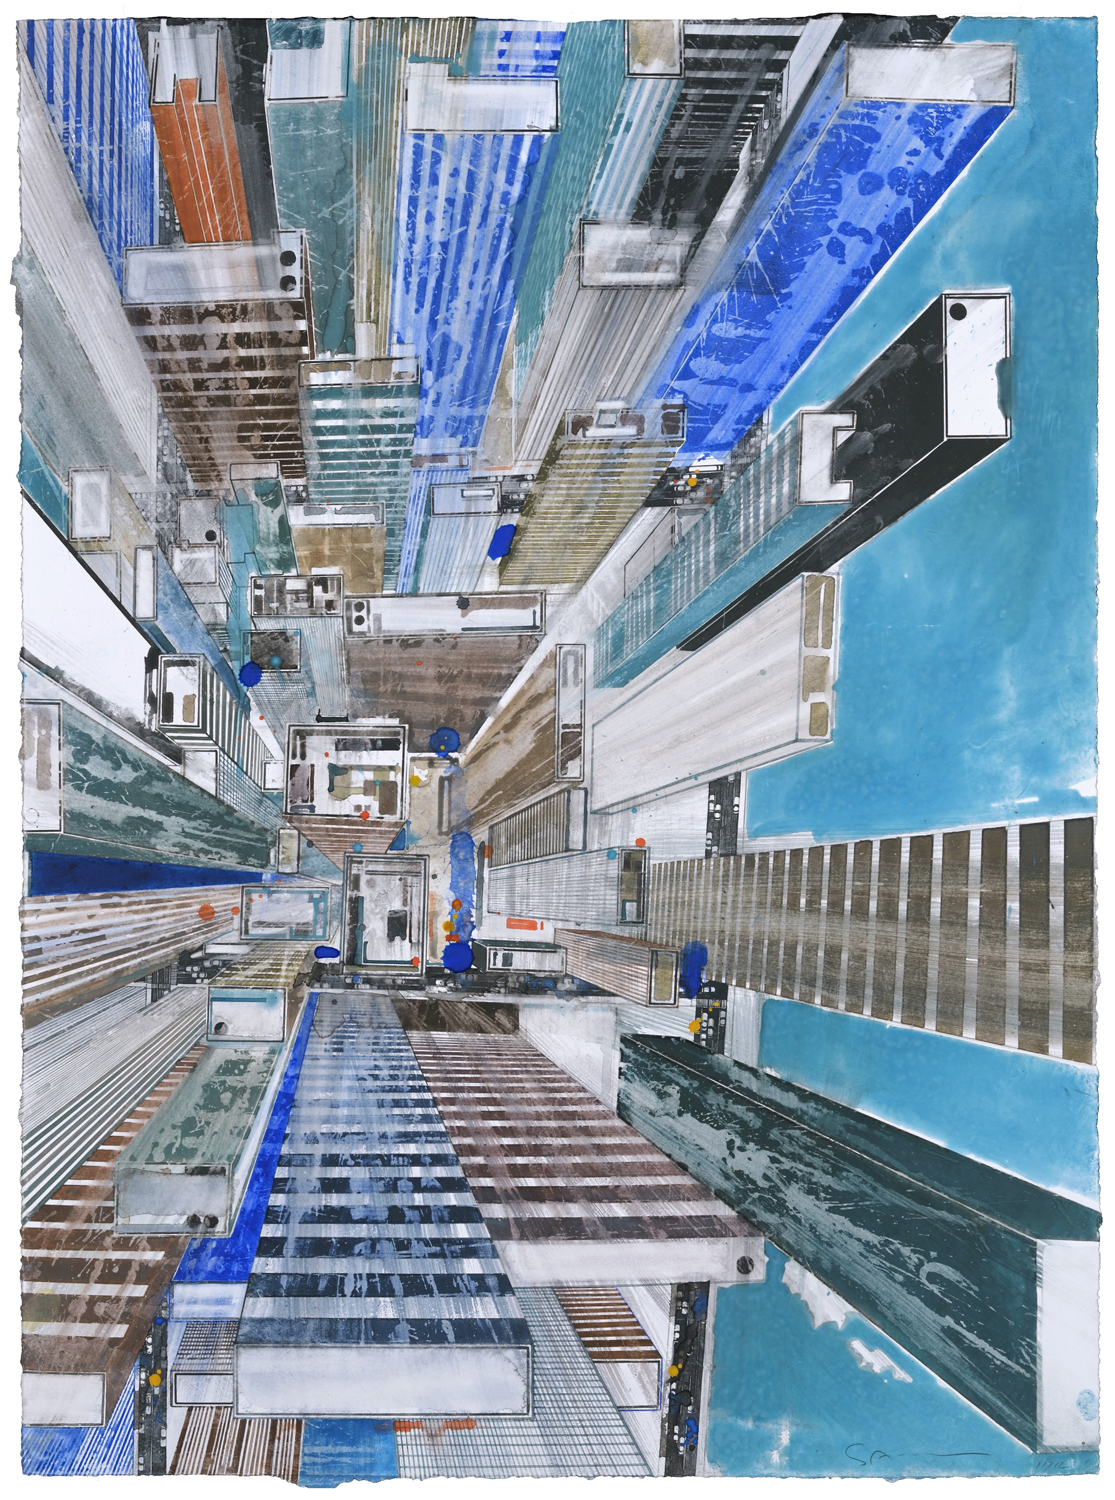 GOTTFRIED SALZMANN, Waterfront, watercolor, 28 x 21 in, 2017